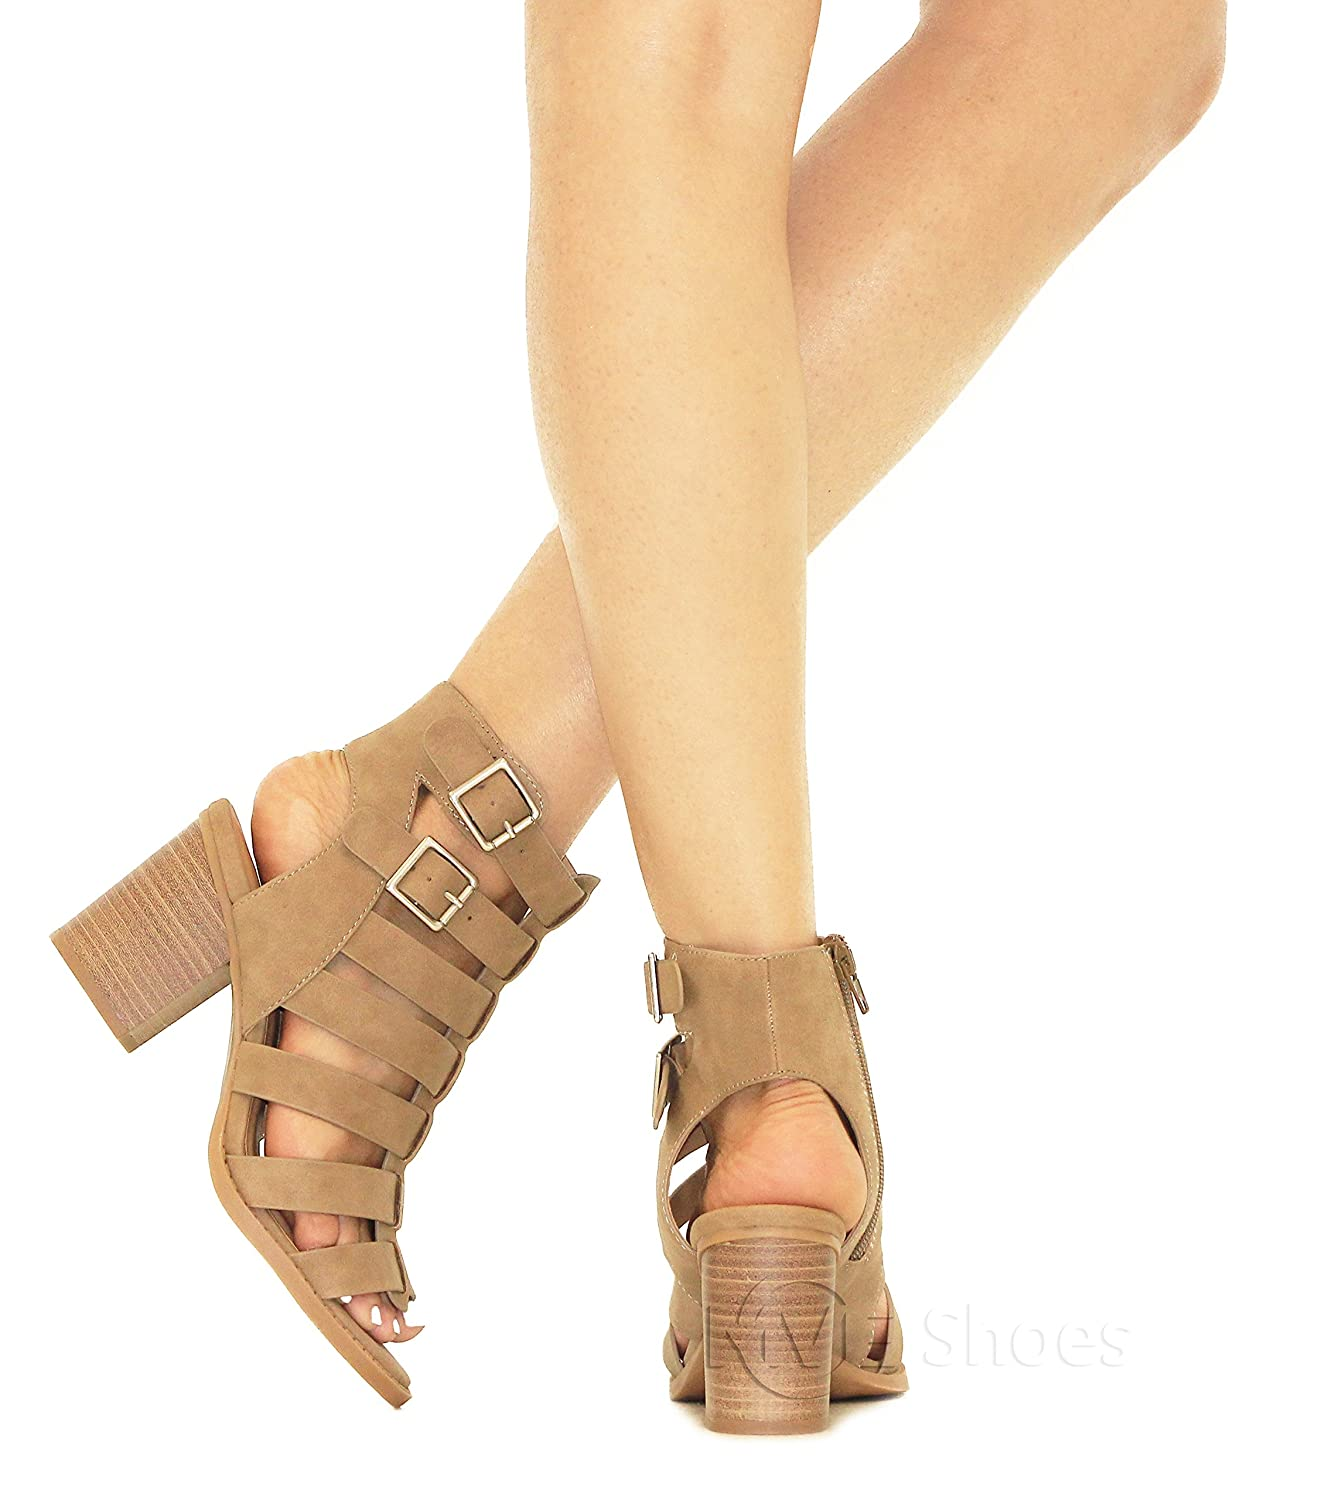 MVE Shoes Women's Open Toe Cut Out Mid Heel Sandal - Ankle Strap Faux Leather Dress Shoes - Sexy Stacked Sandal B0799QJVR3 6 B(M) US|Taupedispu*n